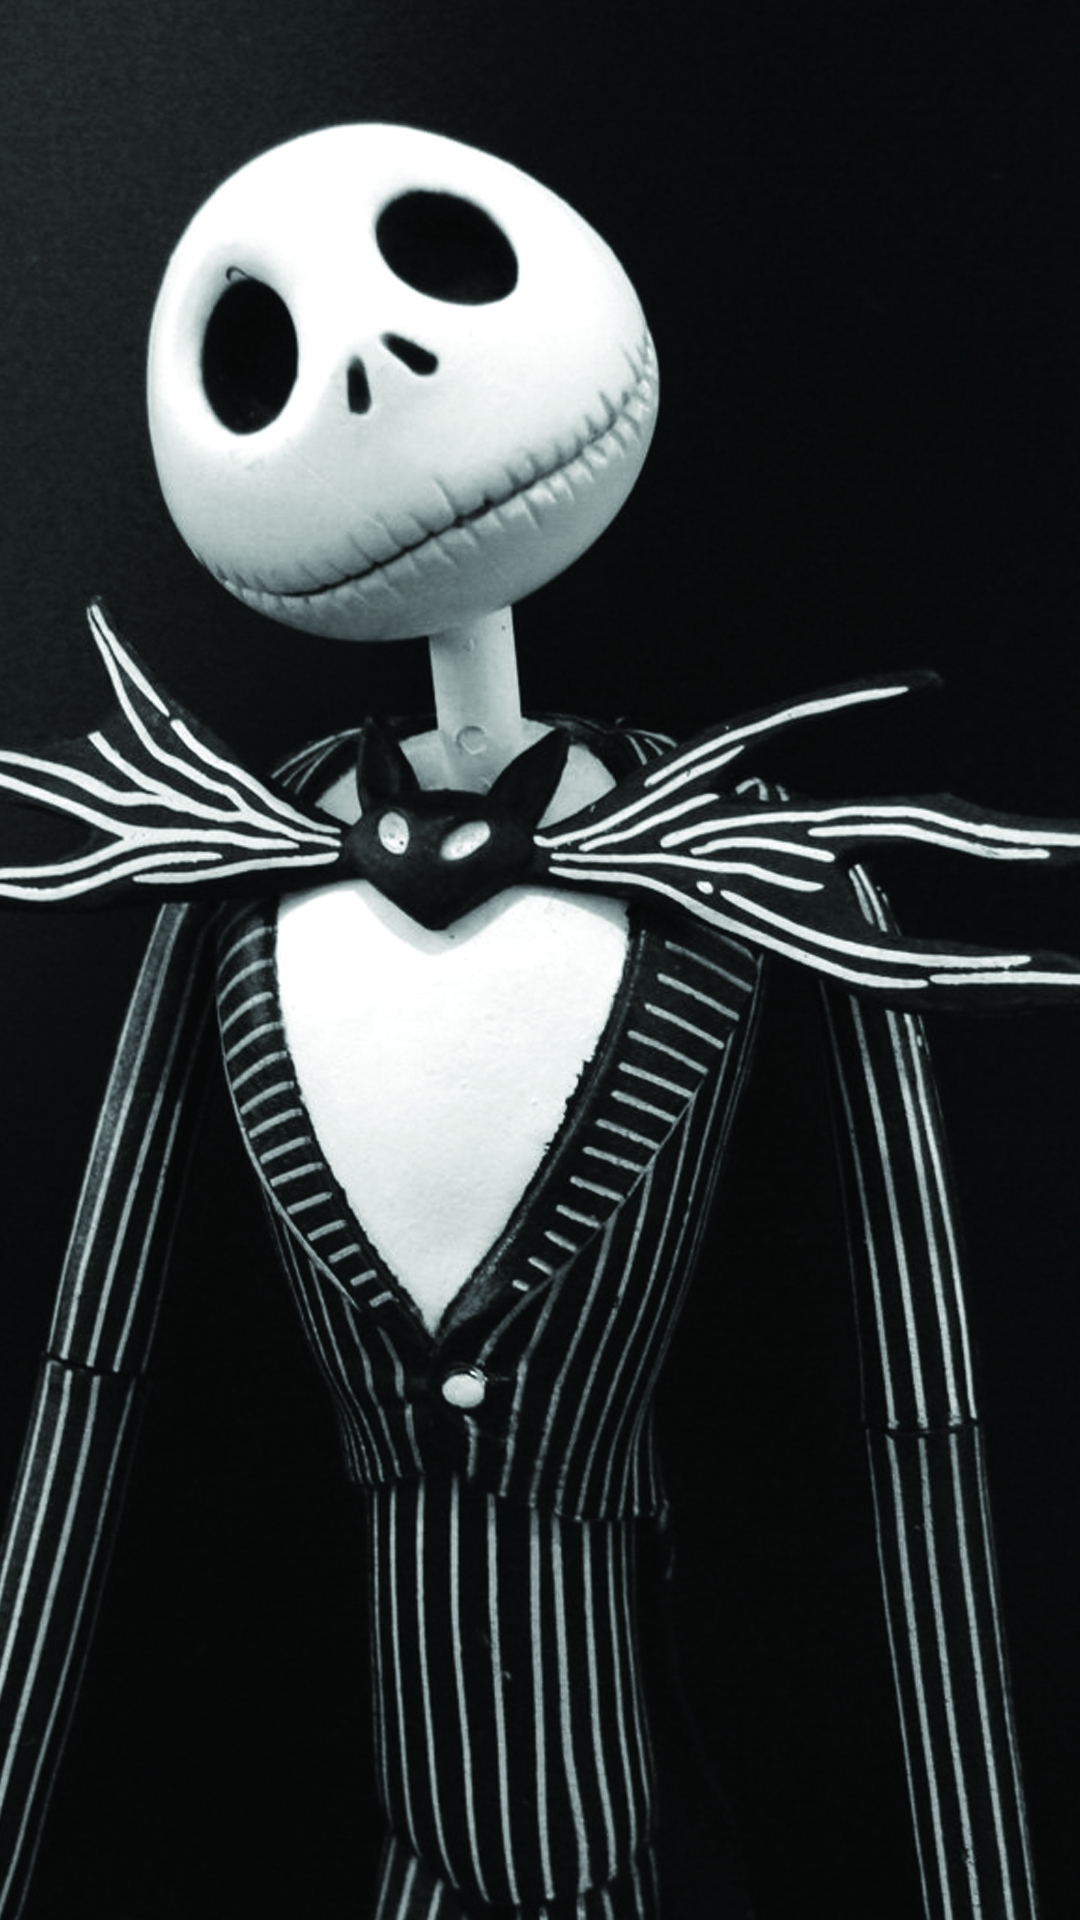 jack skellington nightmare before christmas android wallpaper free